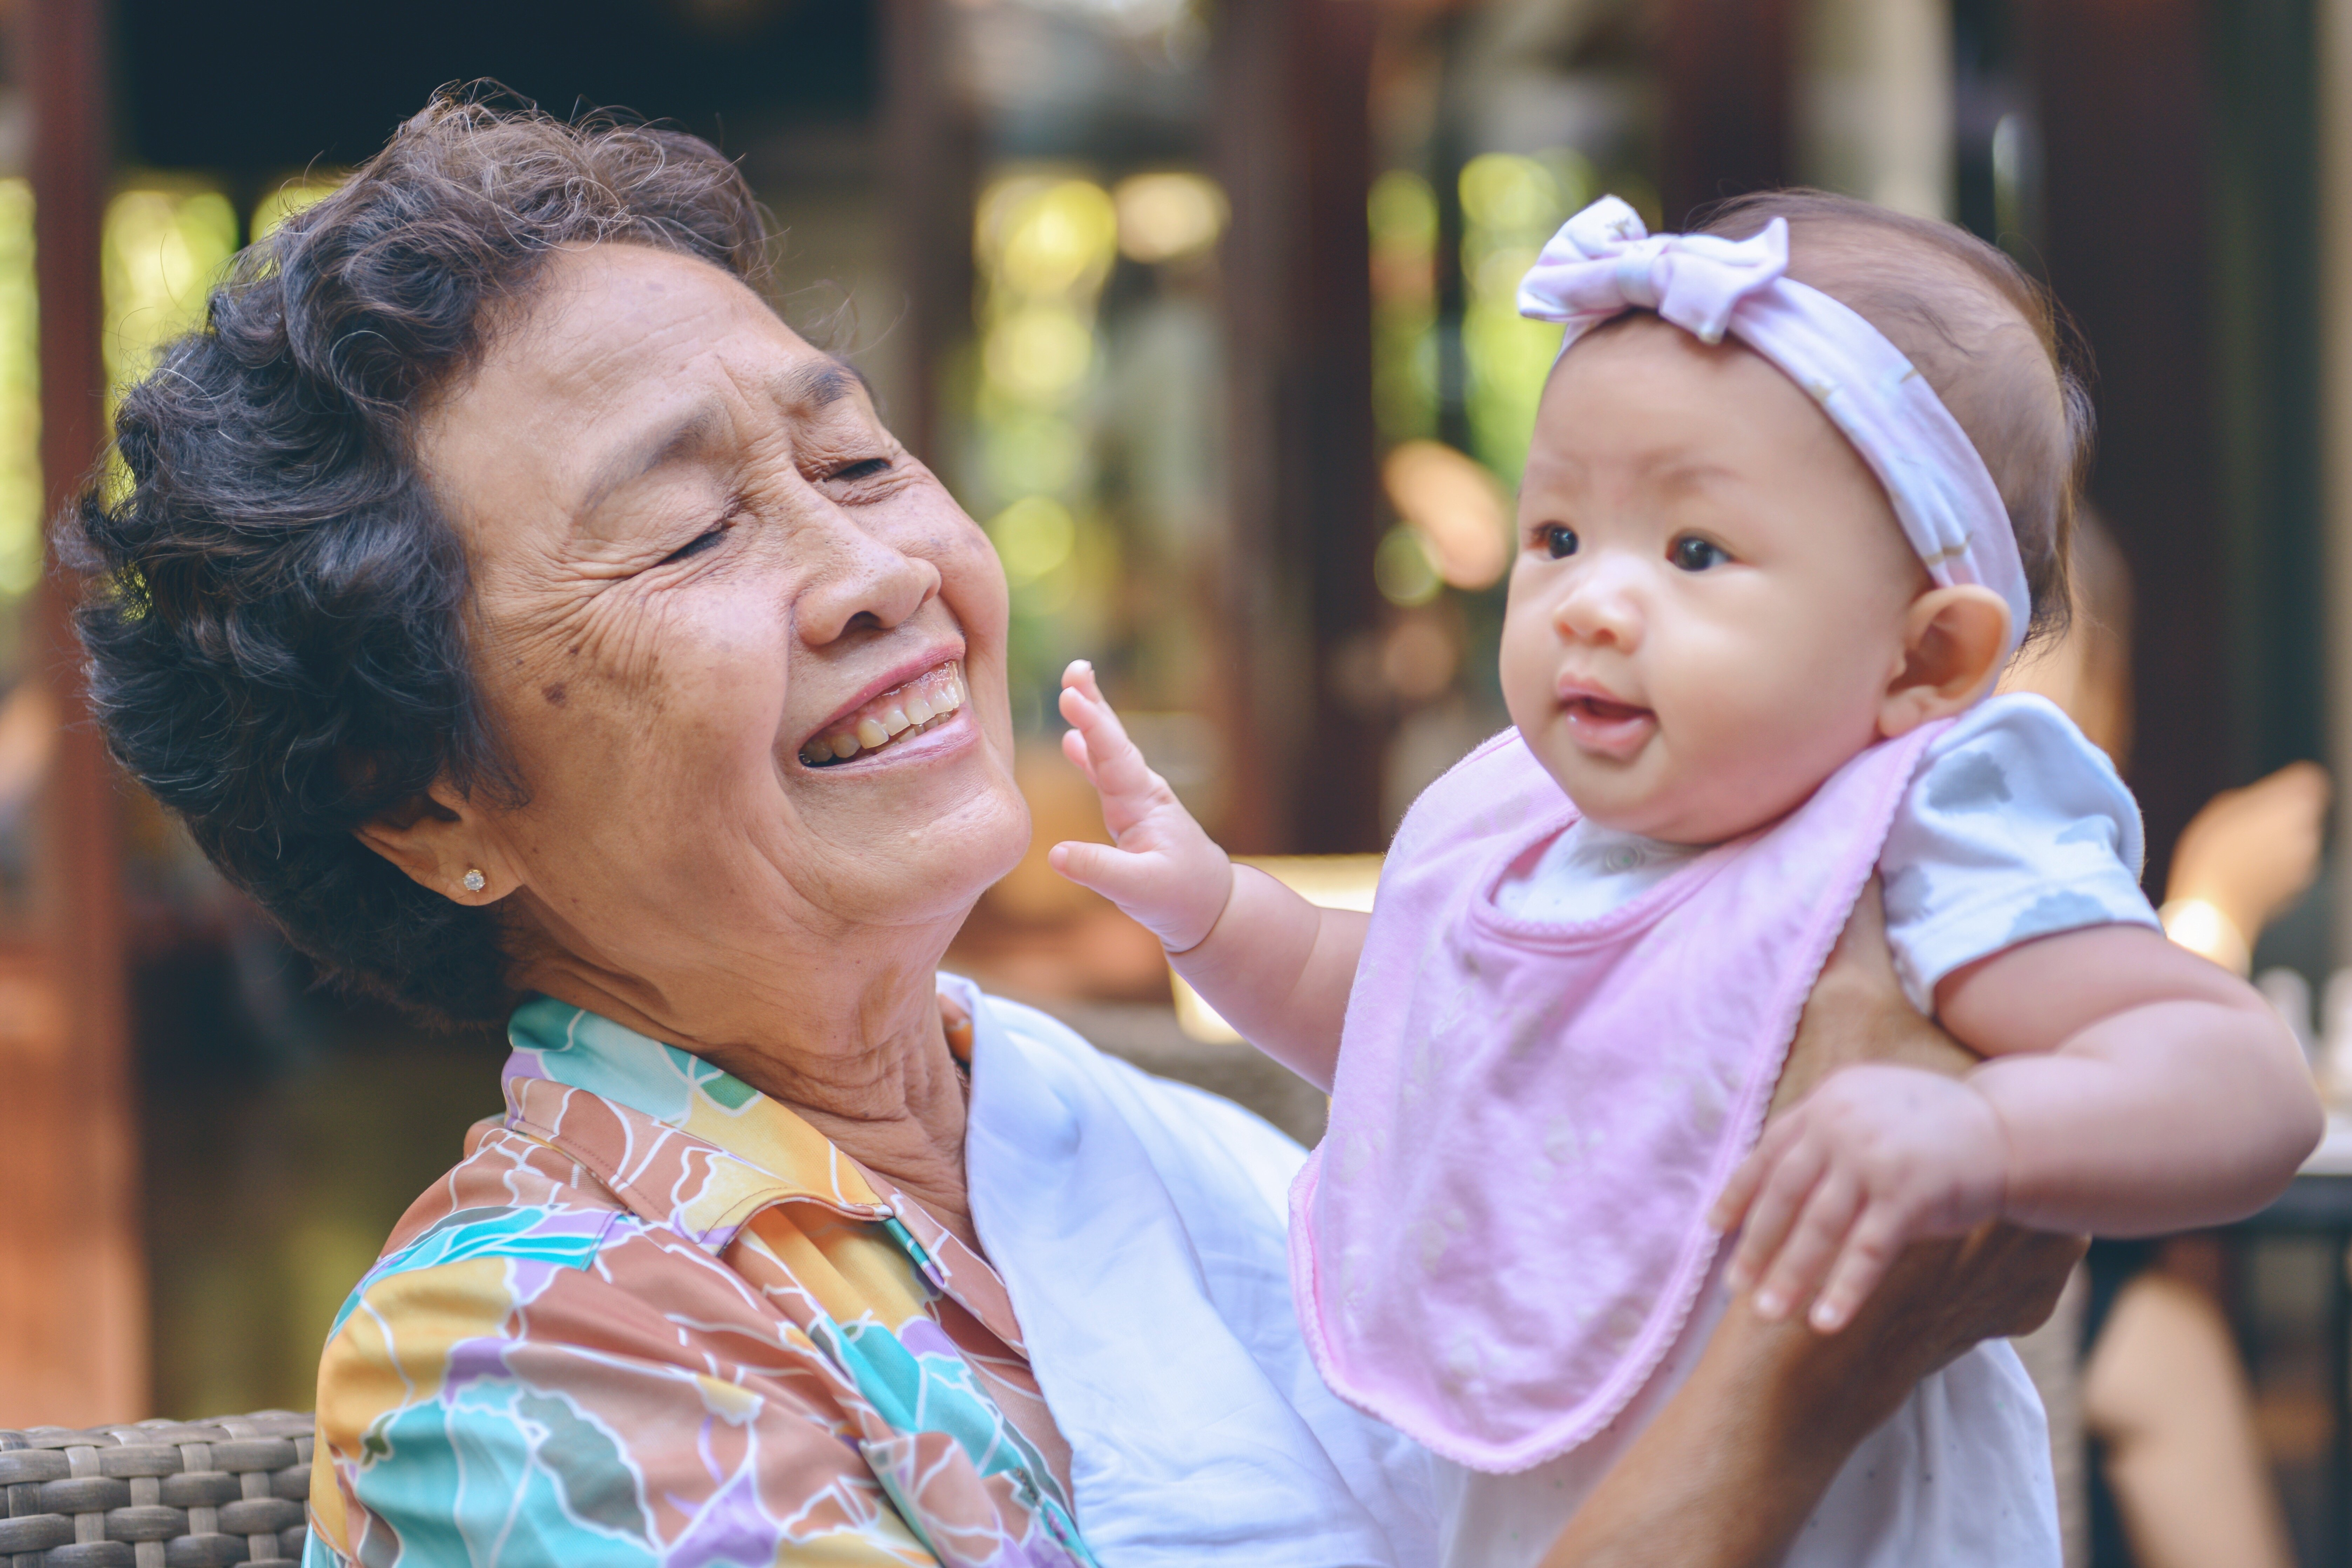 A Better Way to Care for Young Children and Older Adults